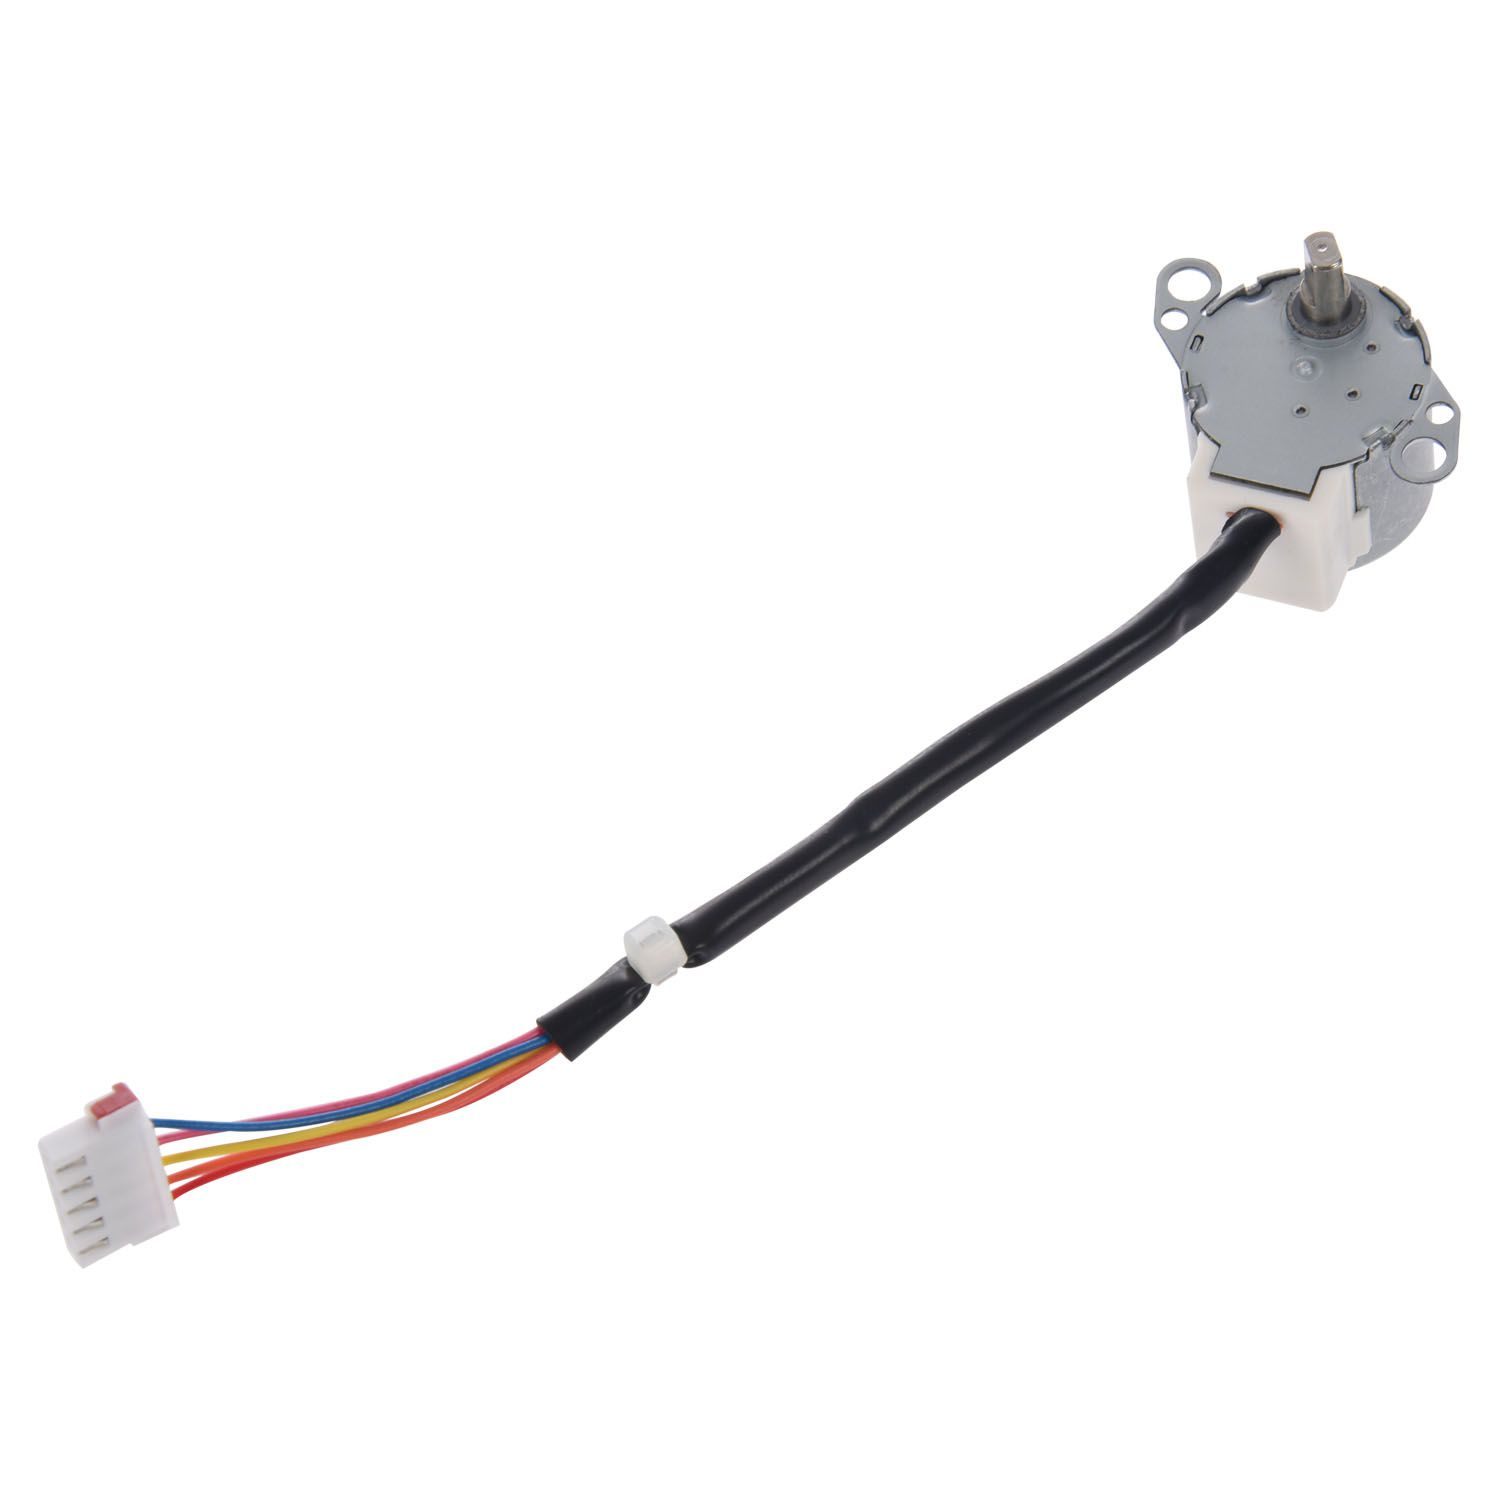 Wholesales DC <font><b>12V</b></font> CNC Reducing Stepping Stepper Motor 0.6A 10oz.in <font><b>24BYJ48</b></font> Silver image